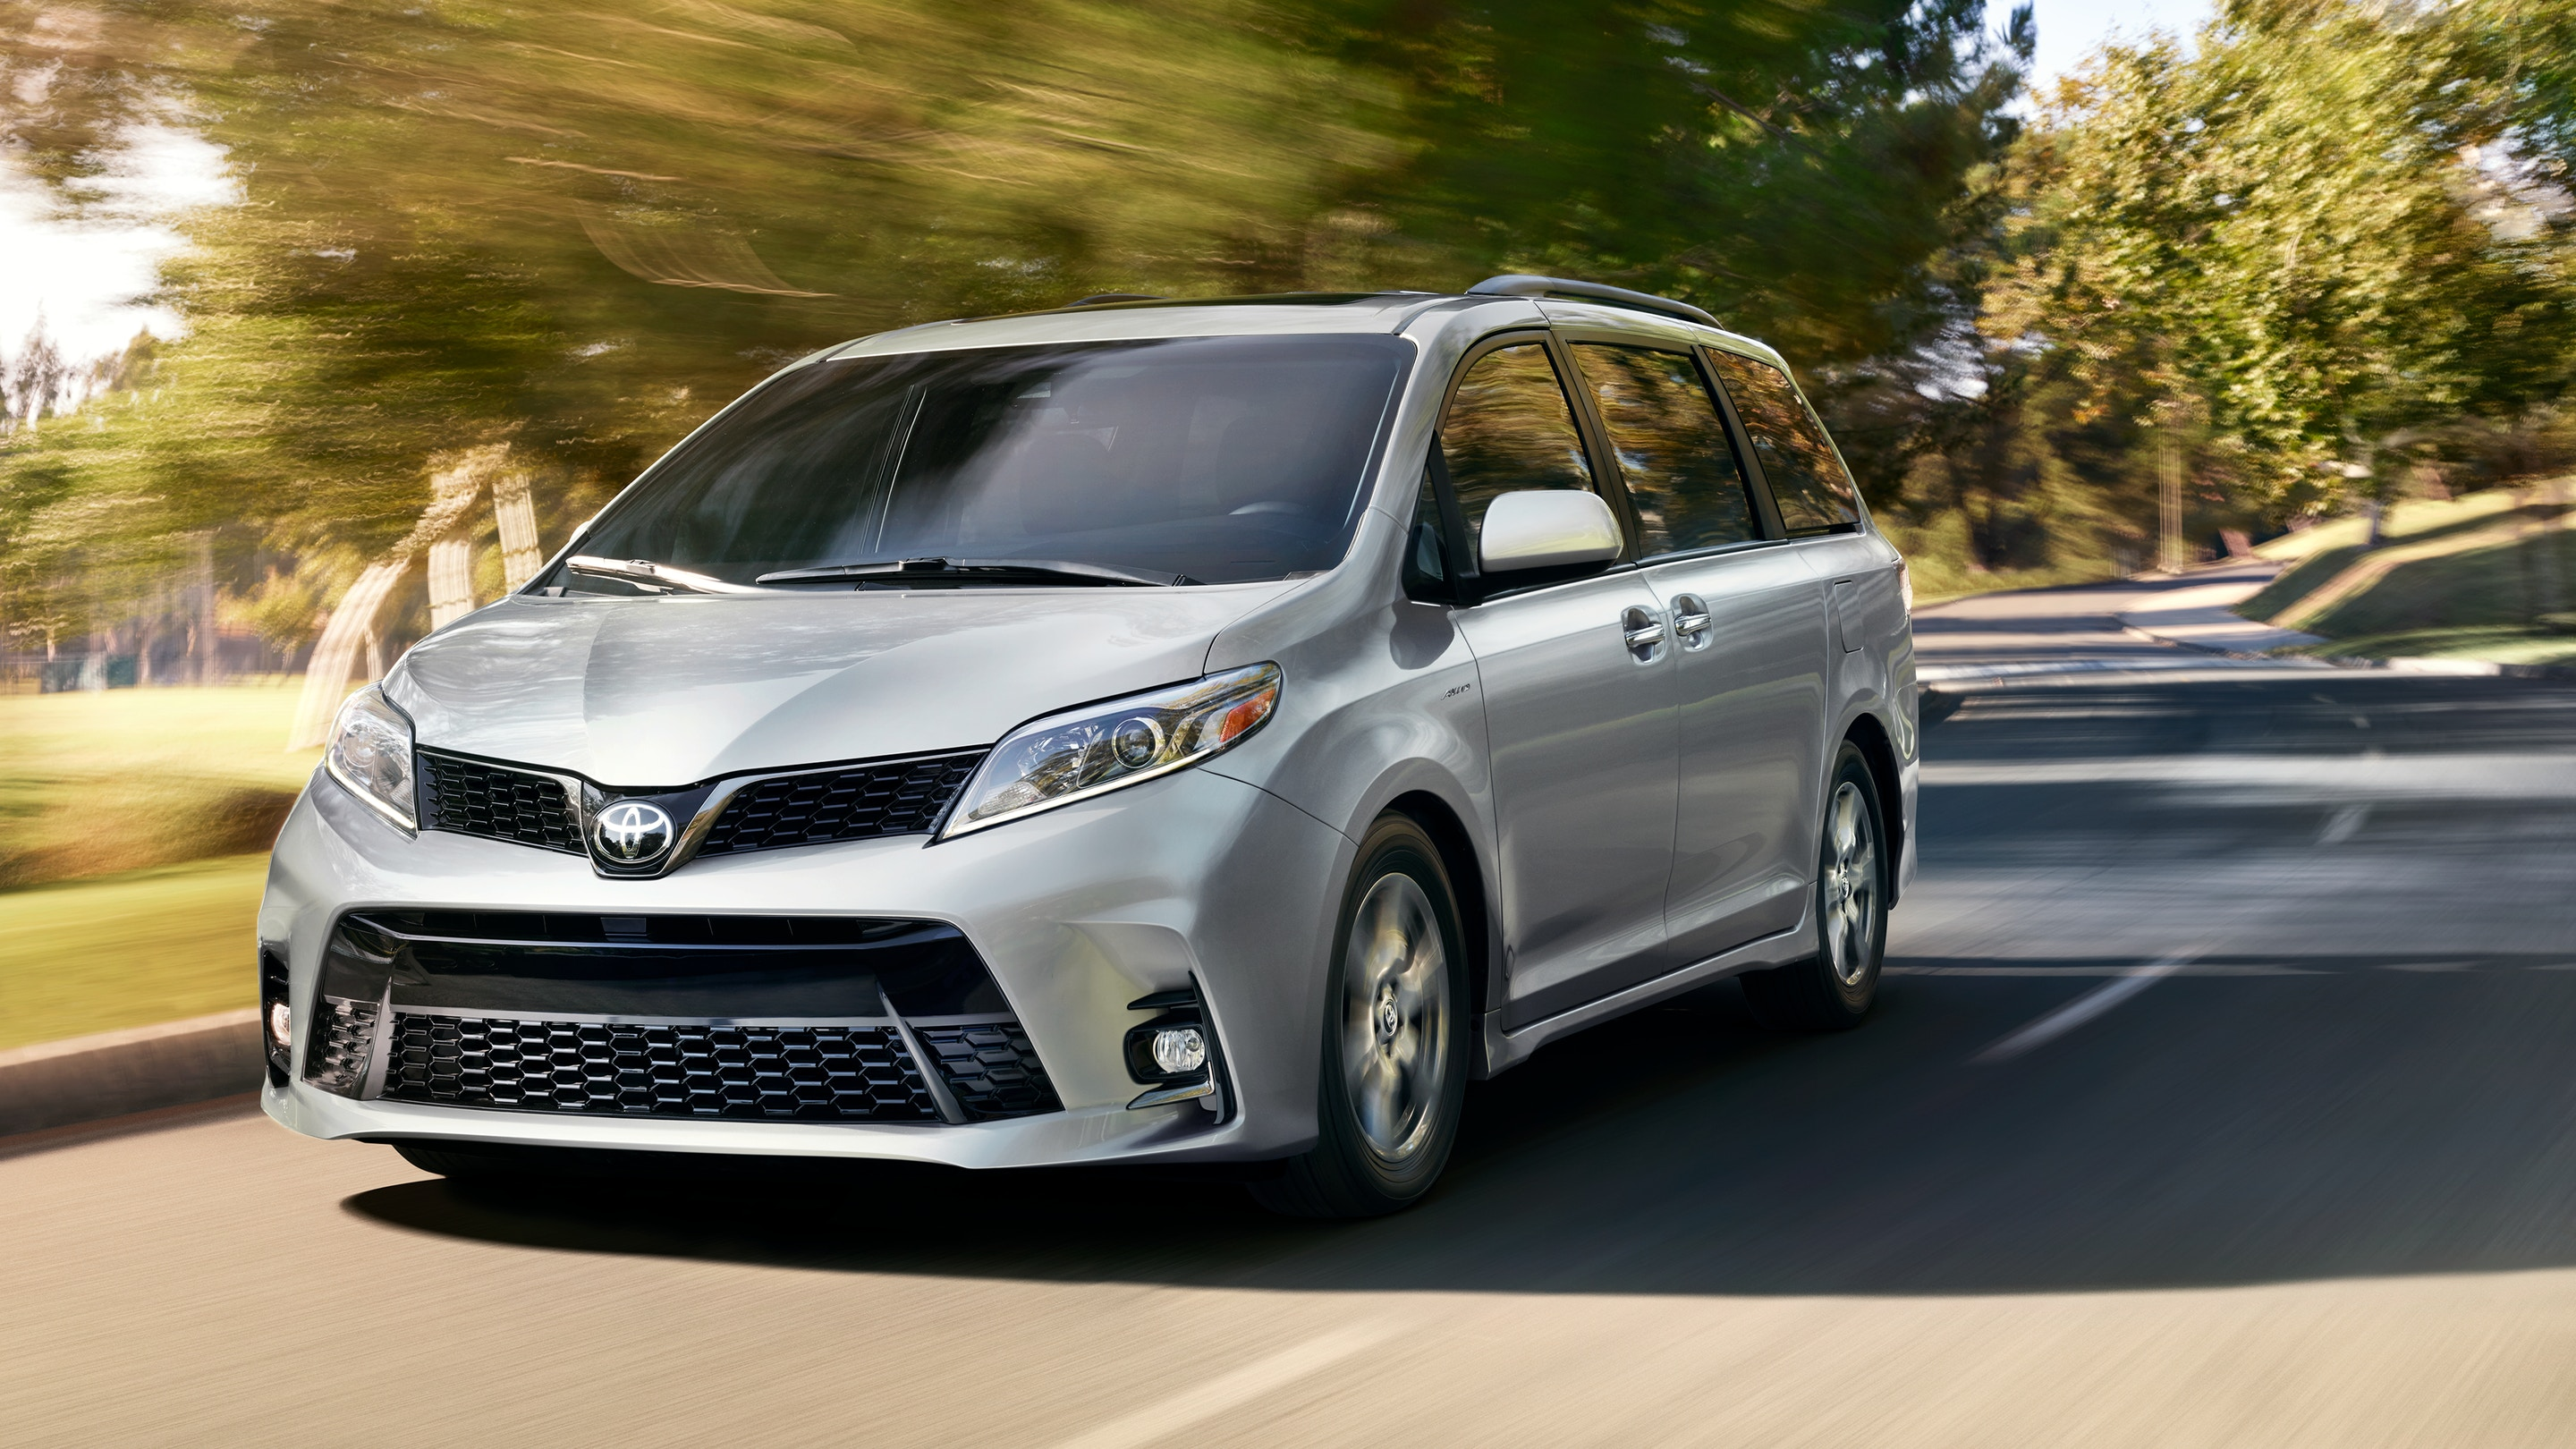 2019 toyota sienna 2nd row seat removal